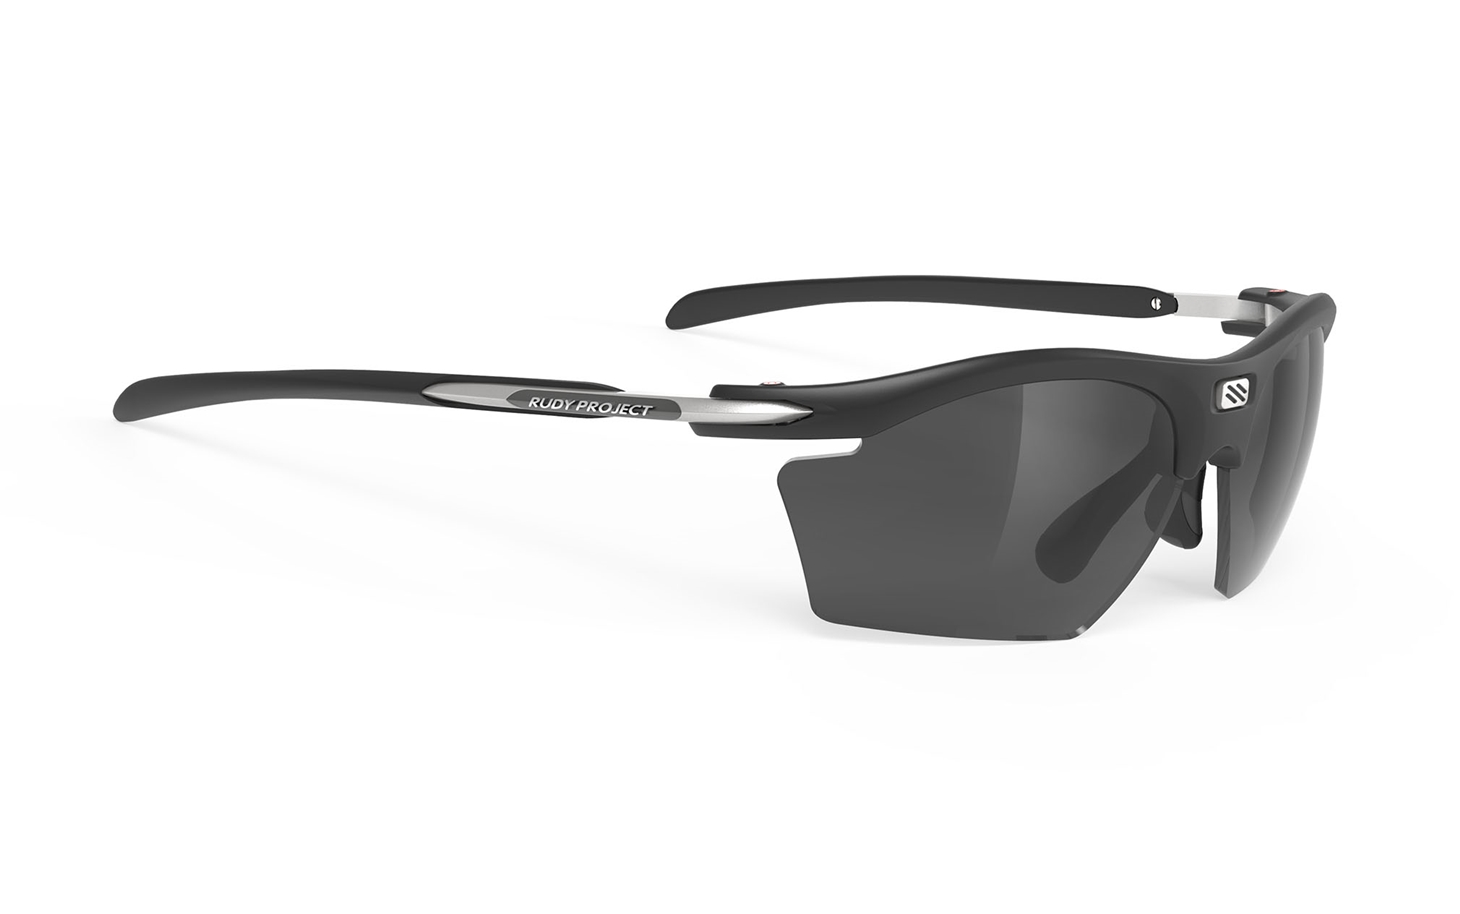 000c1552d64bf Glasses and sports helmets - Rudy Project